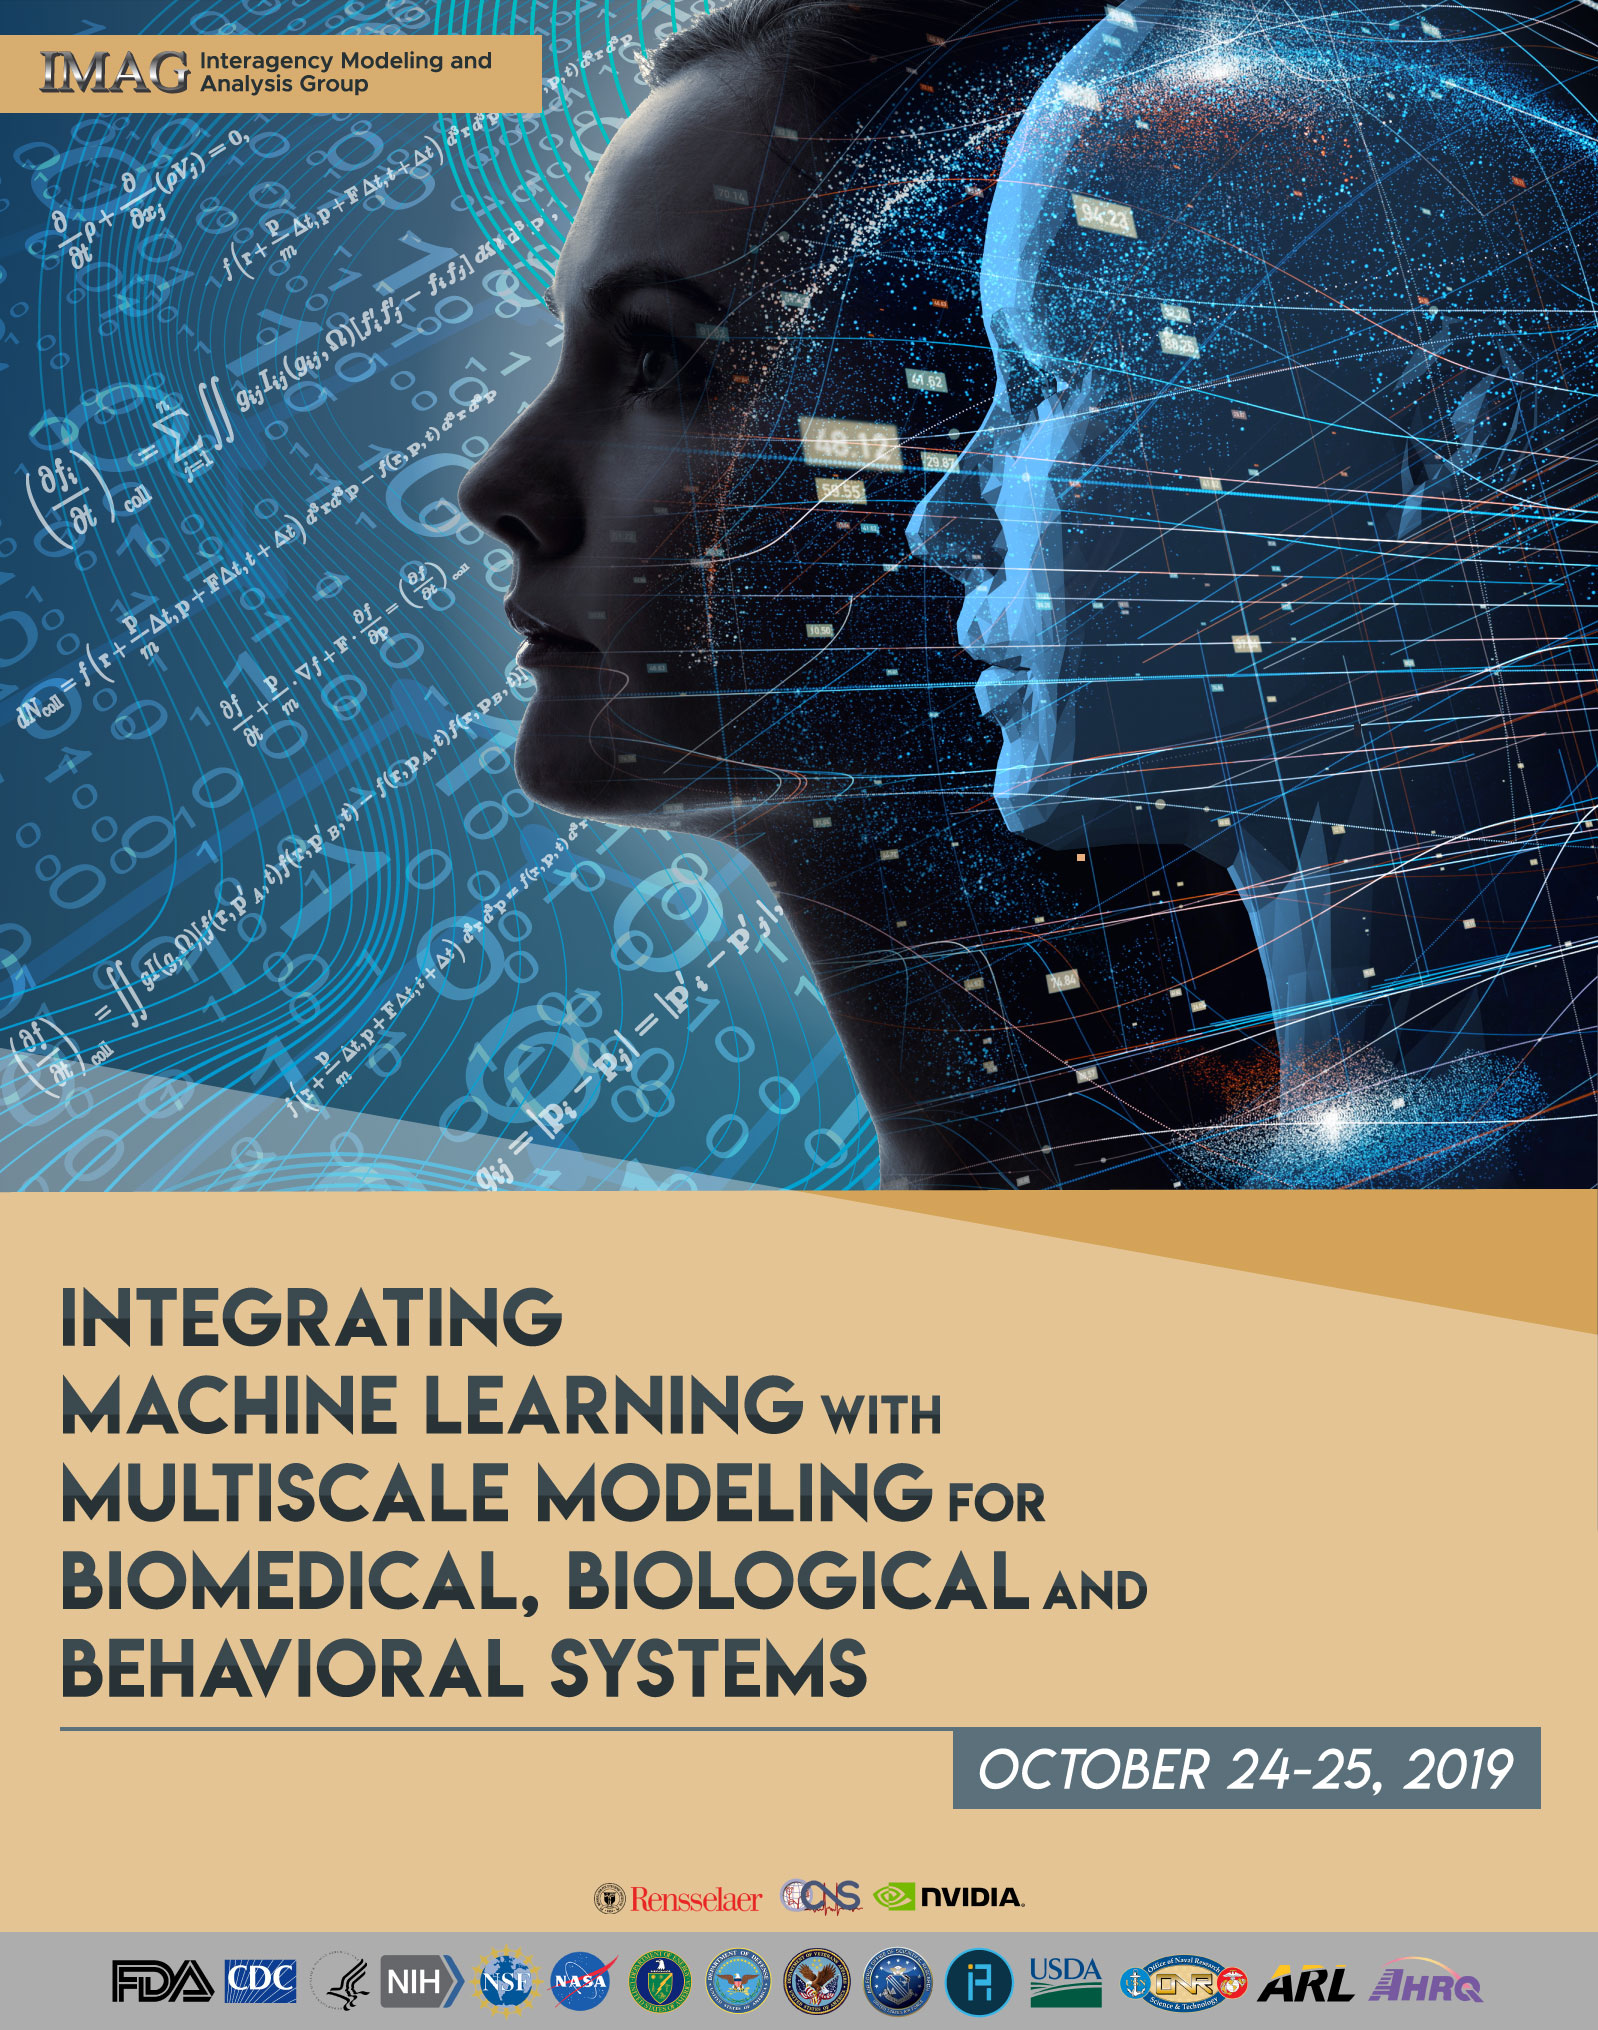 poster of Integrating Machine Learning with Multiscale Modeling for Biomedical